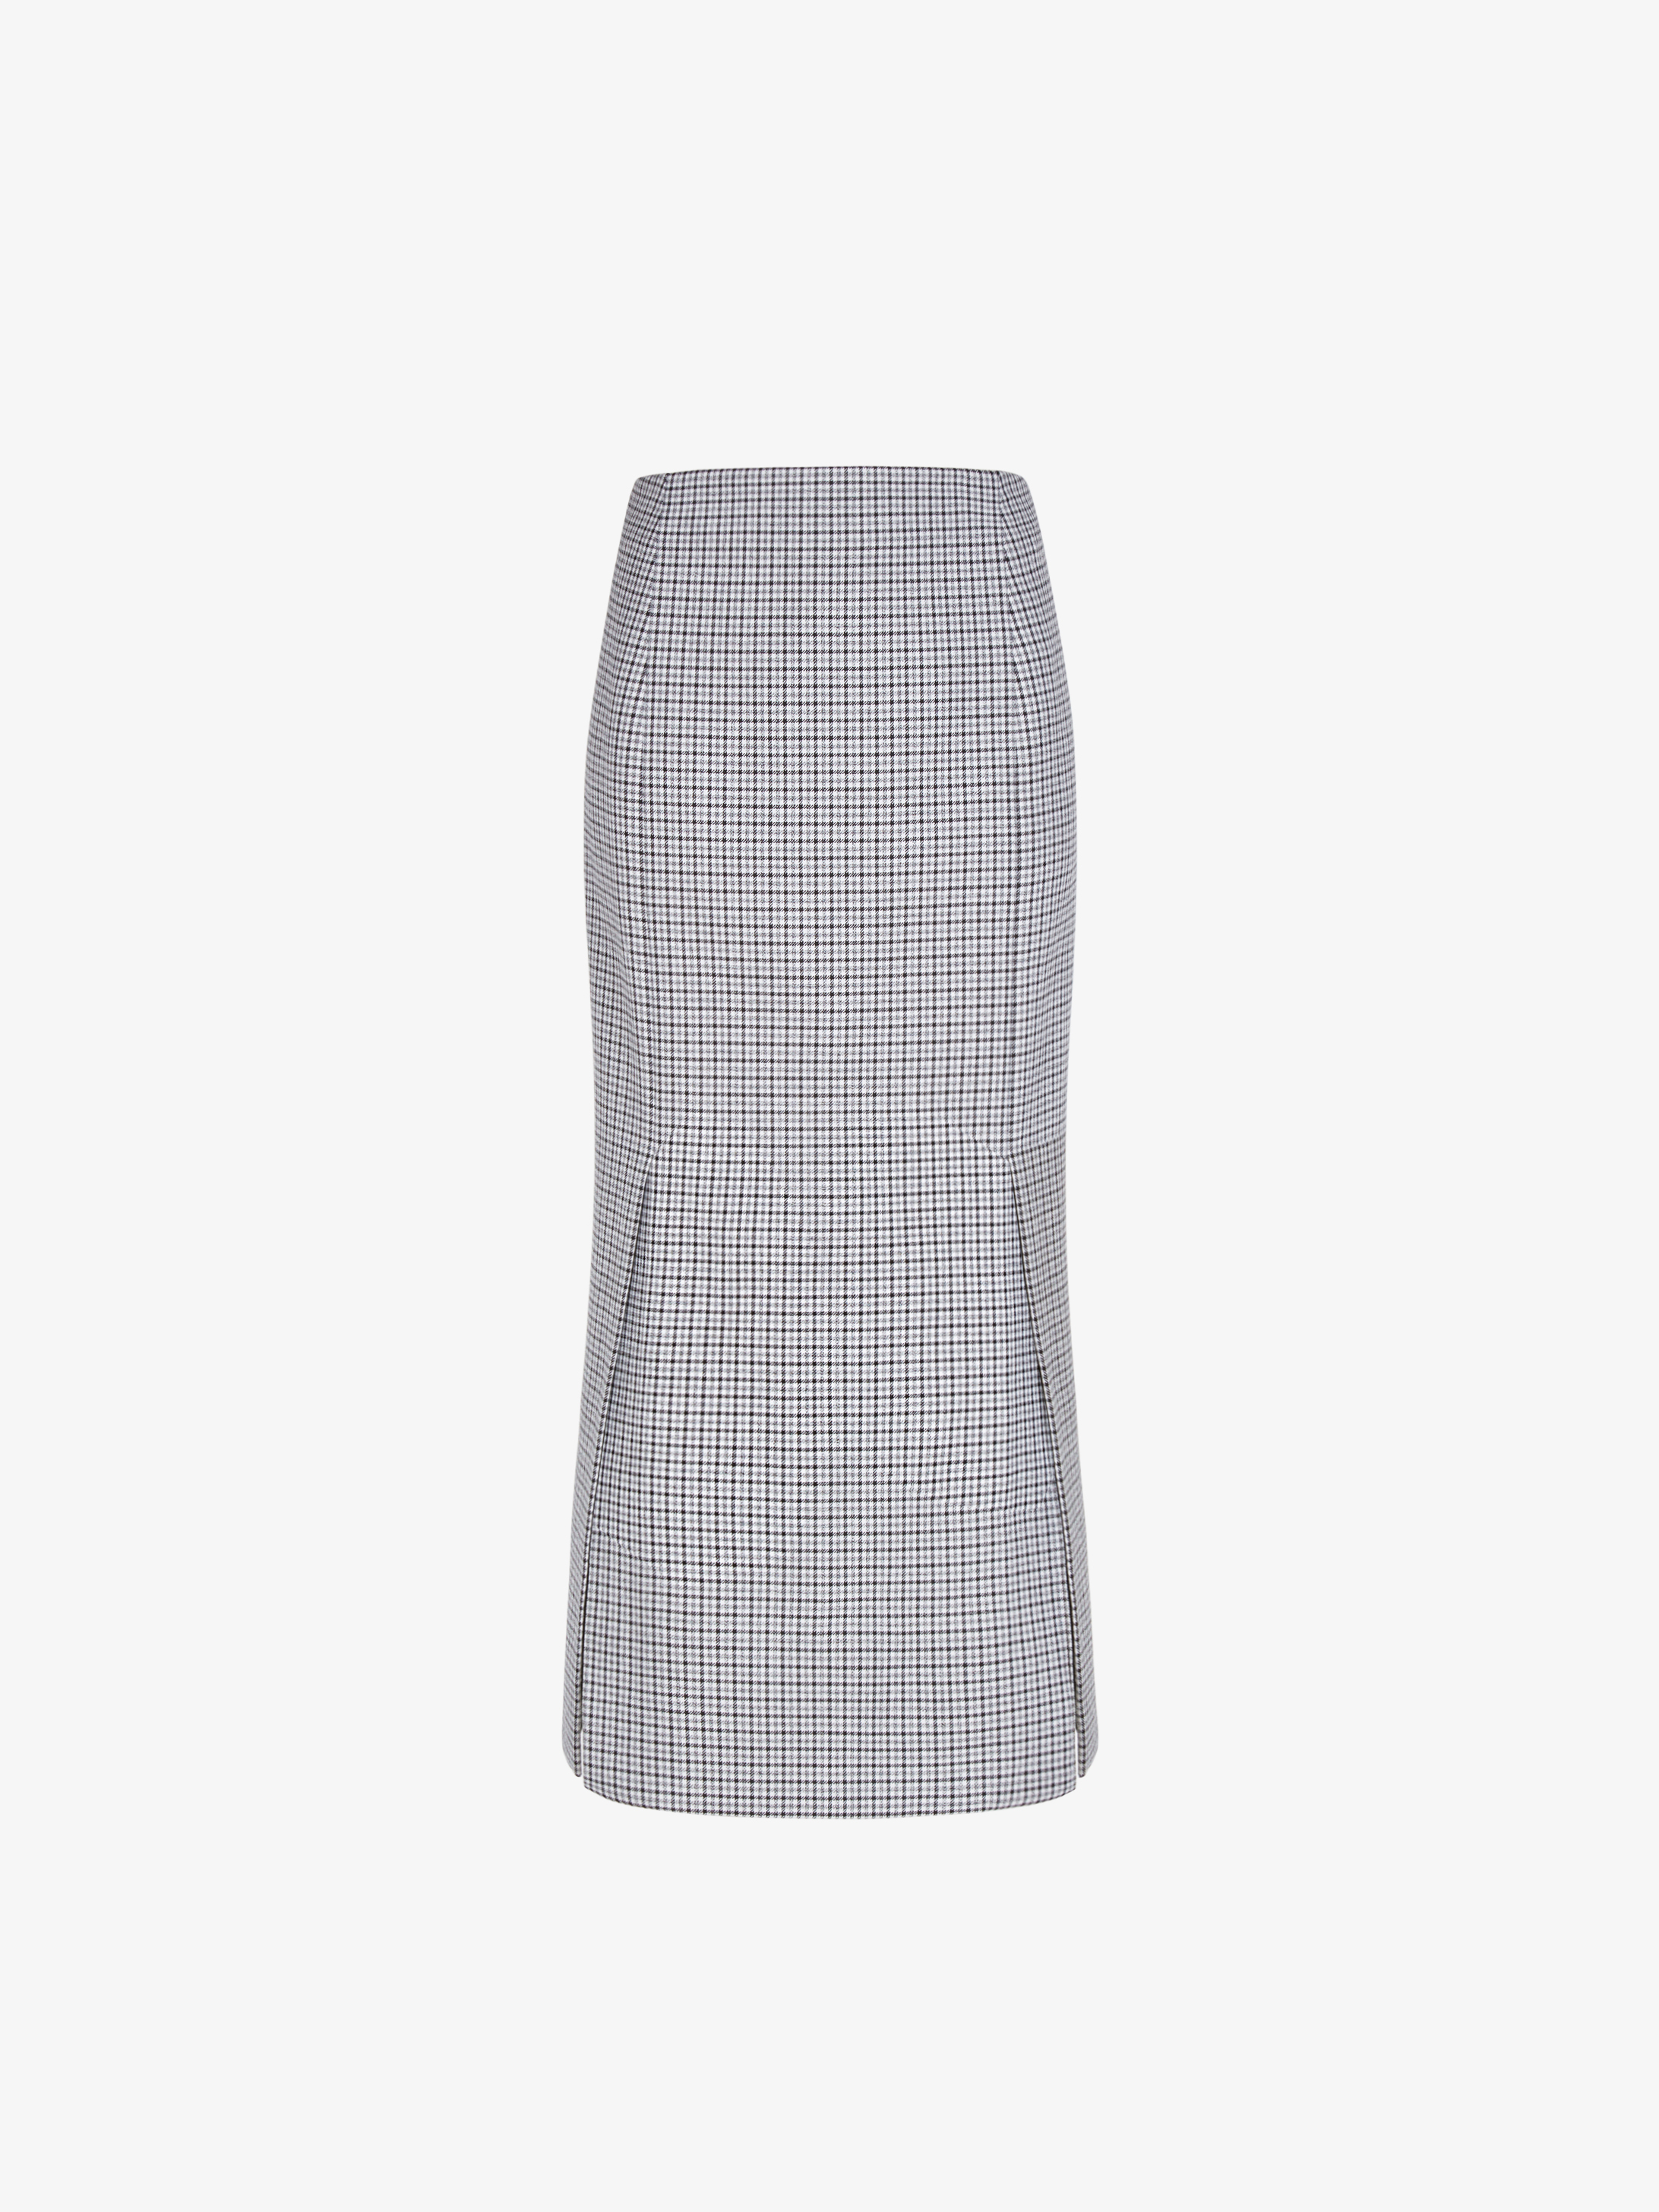 Skirt in houndstooth